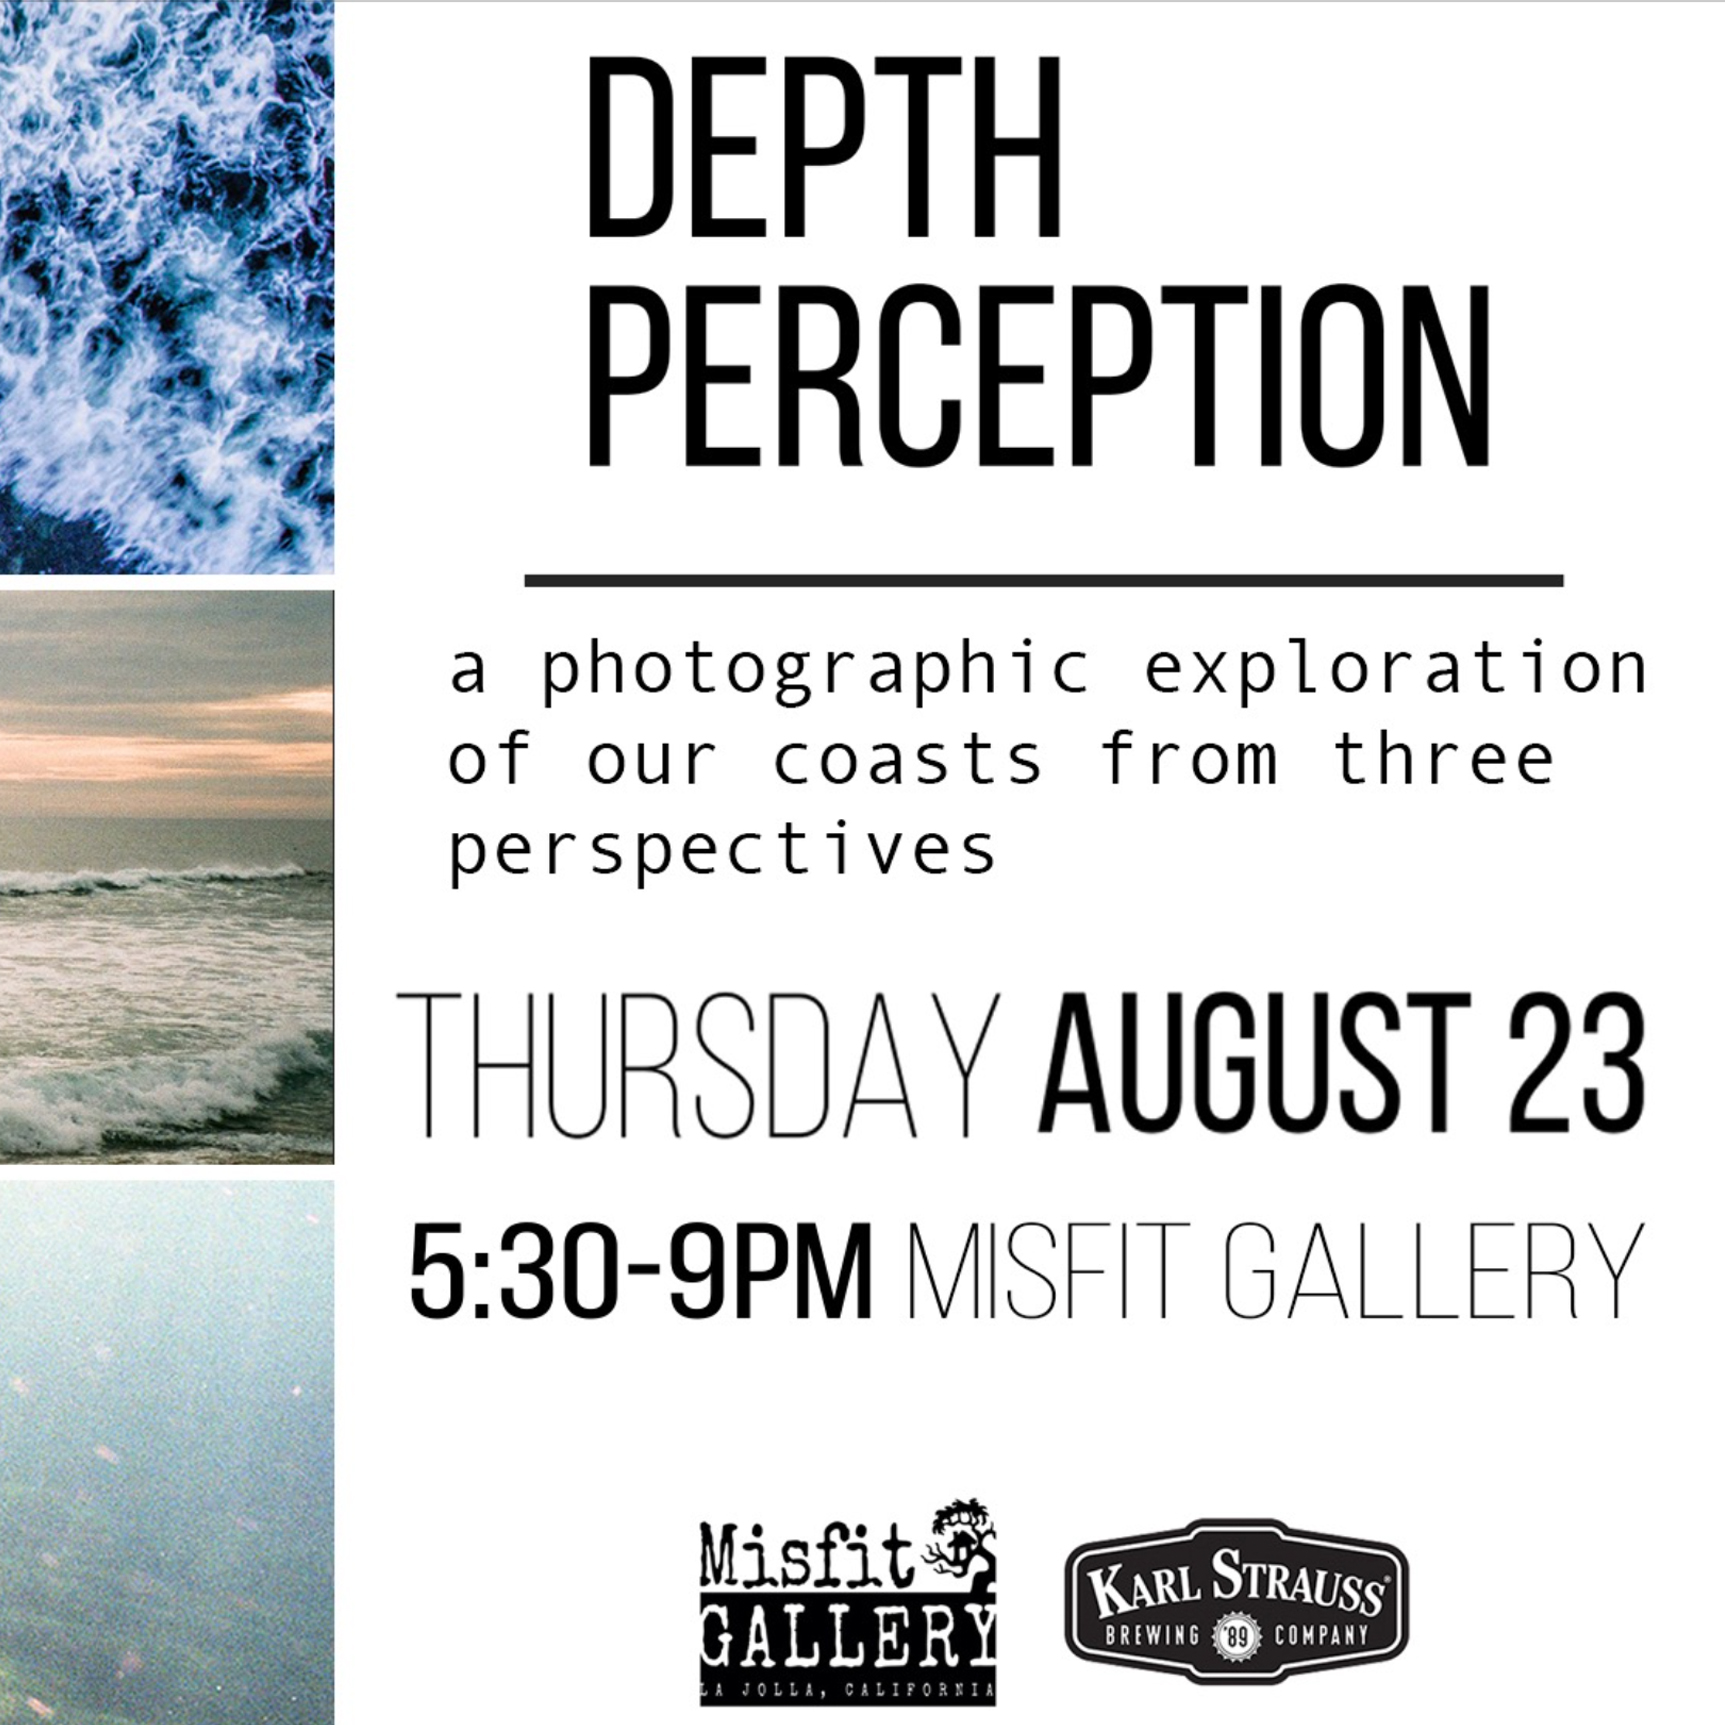 Group Show: Misfit Gallery, La Jolla, CA